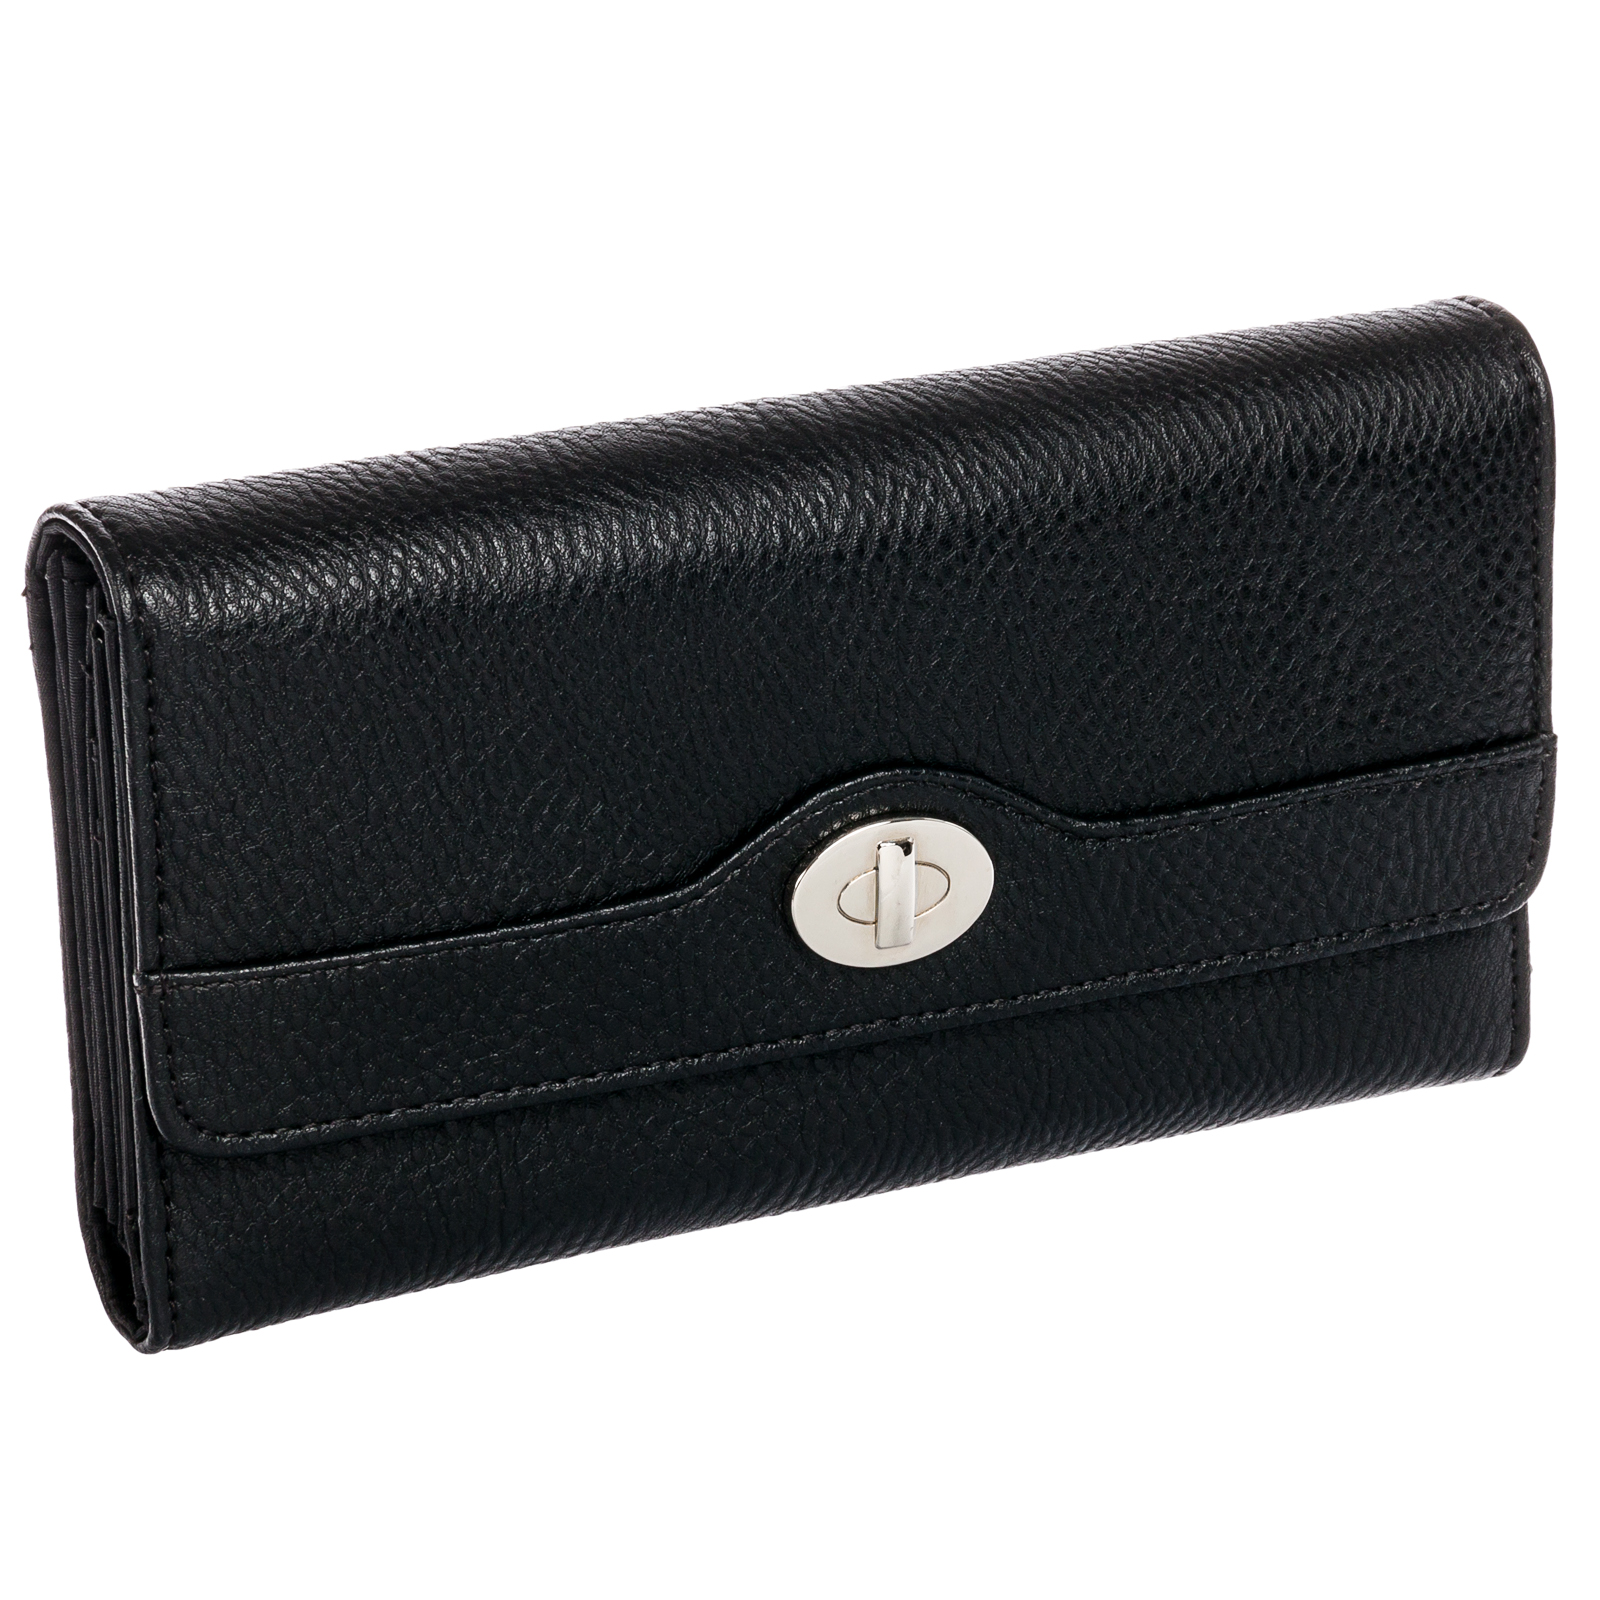 ... NEW Womens File Master Organizer Clutch Smartphone Wallet Purse | eBay